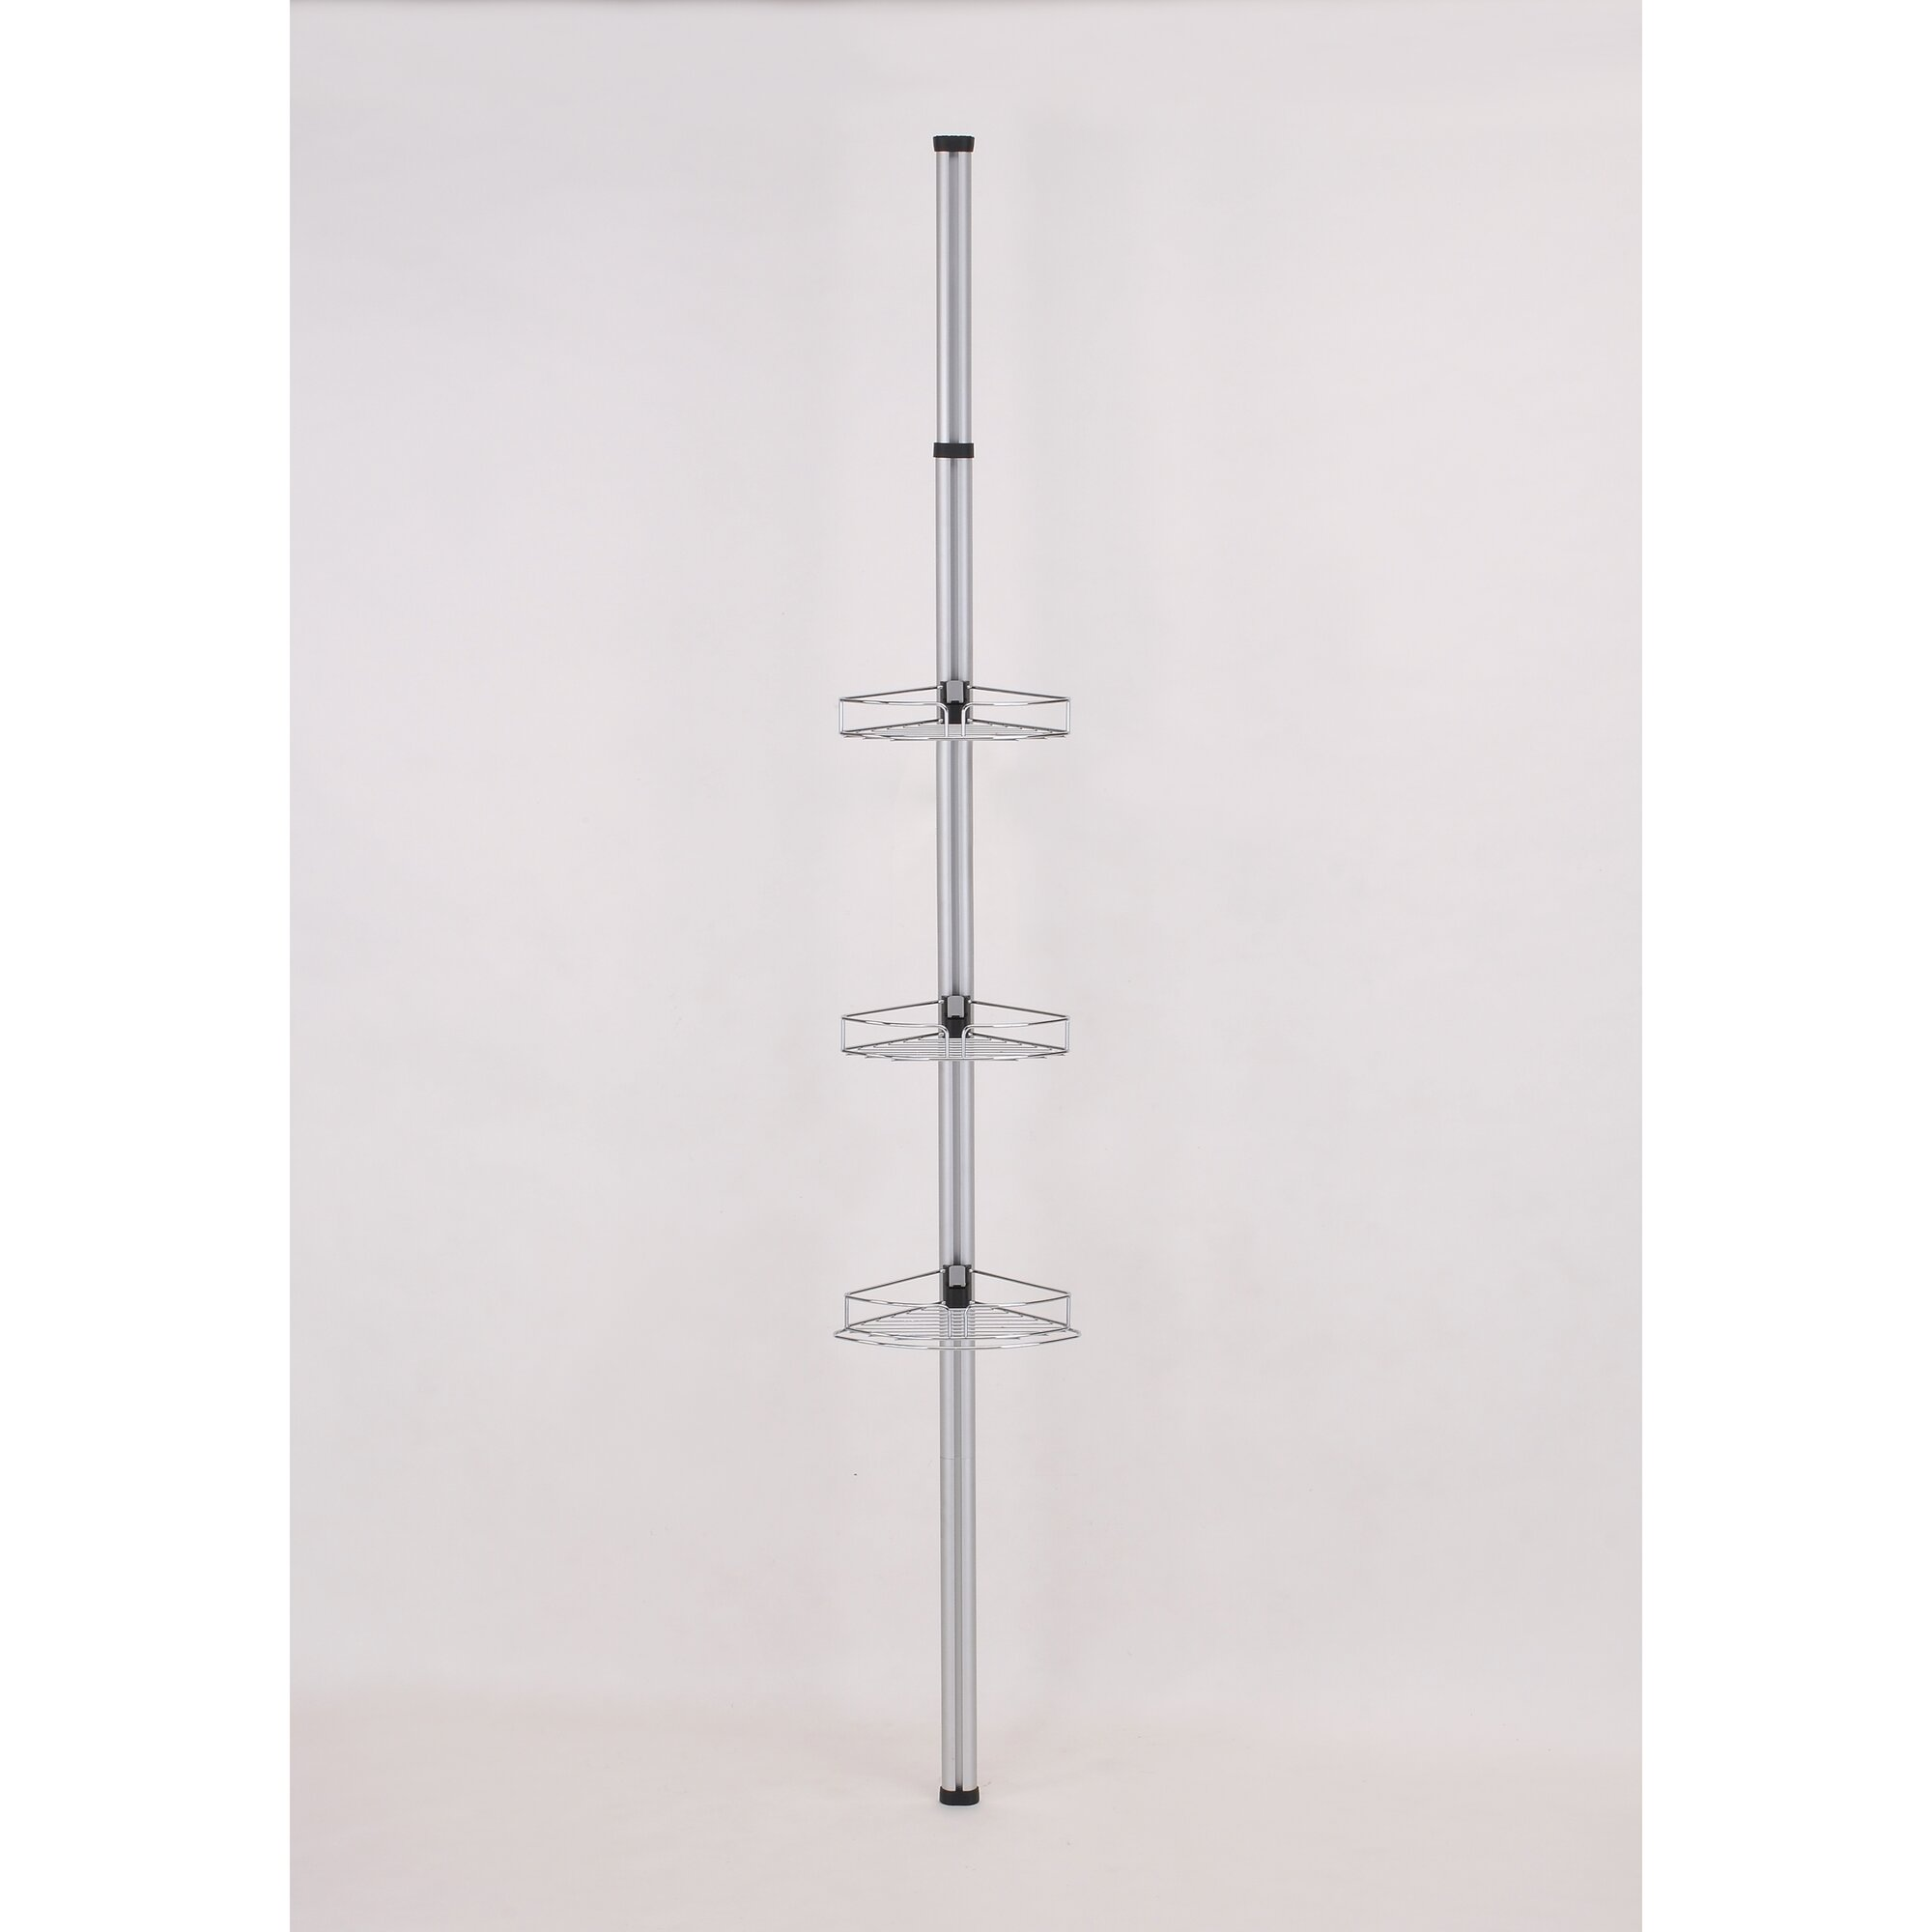 telescopic shower caddy